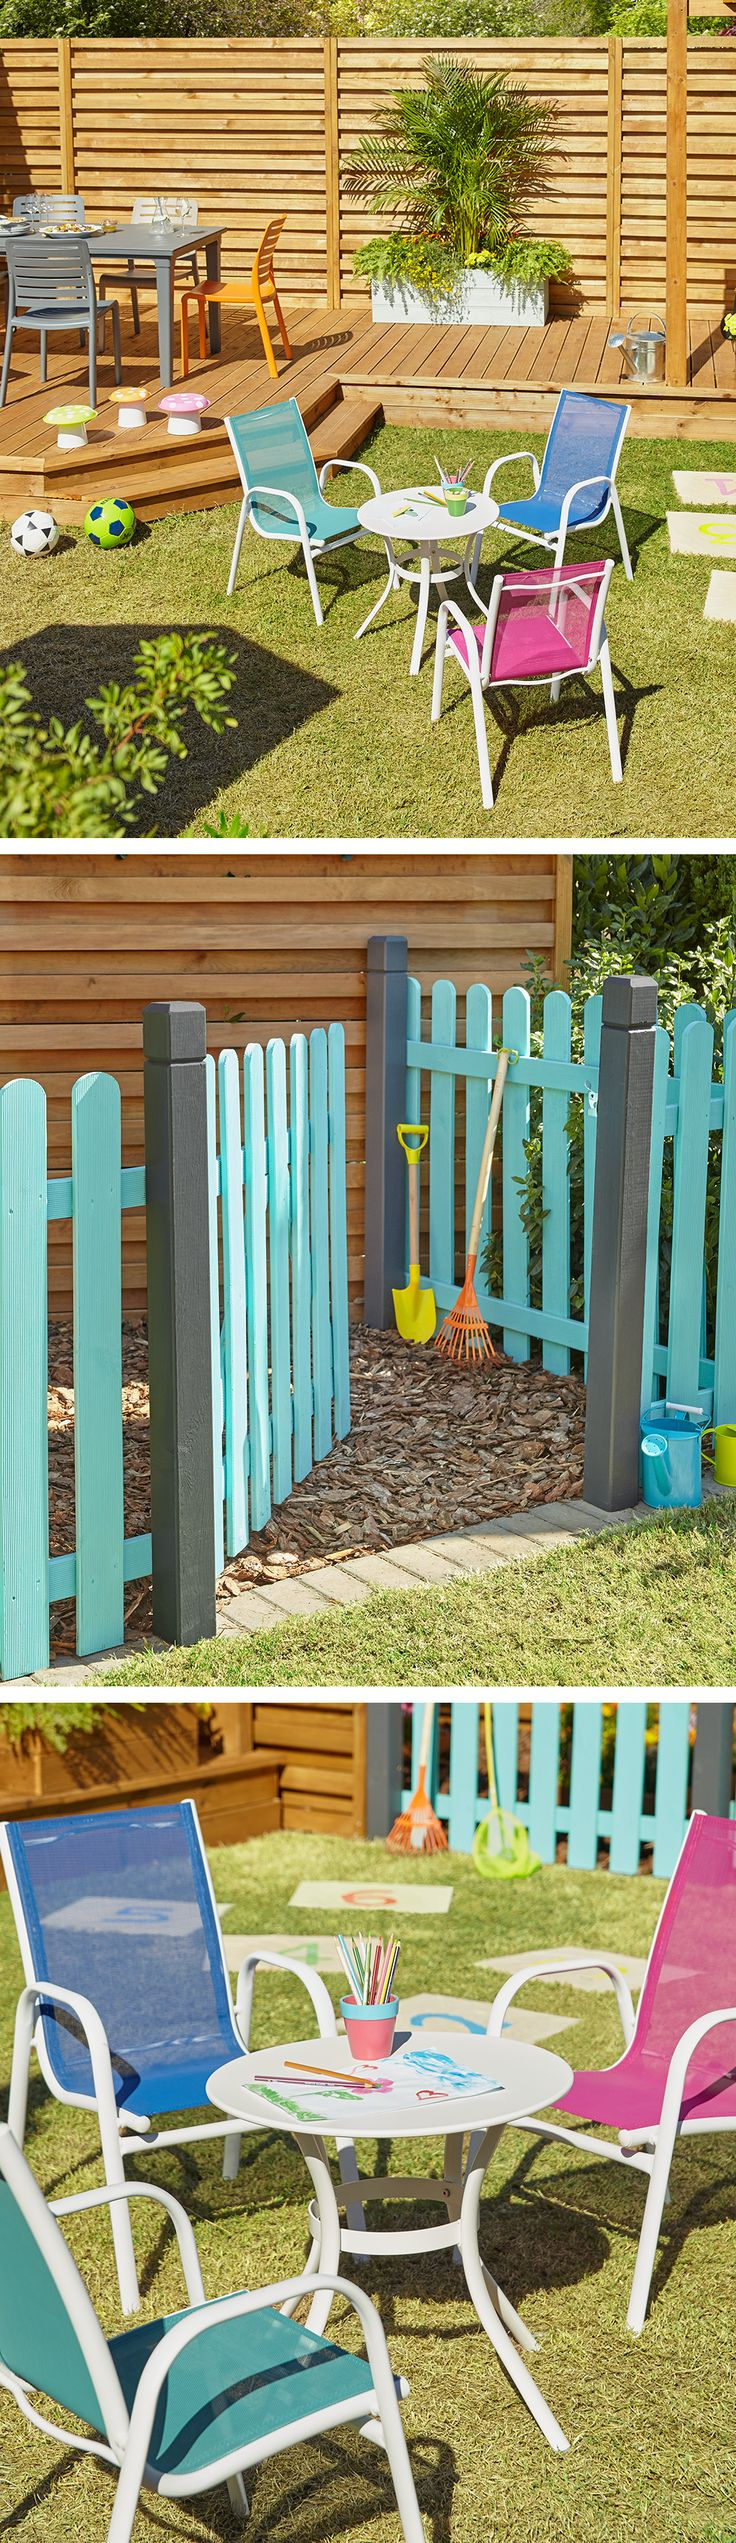 Paint fences bright colours to section off a children's area in your garden. Add some bright coloured chairs and small-sized furniture to give them their own dedicated space.